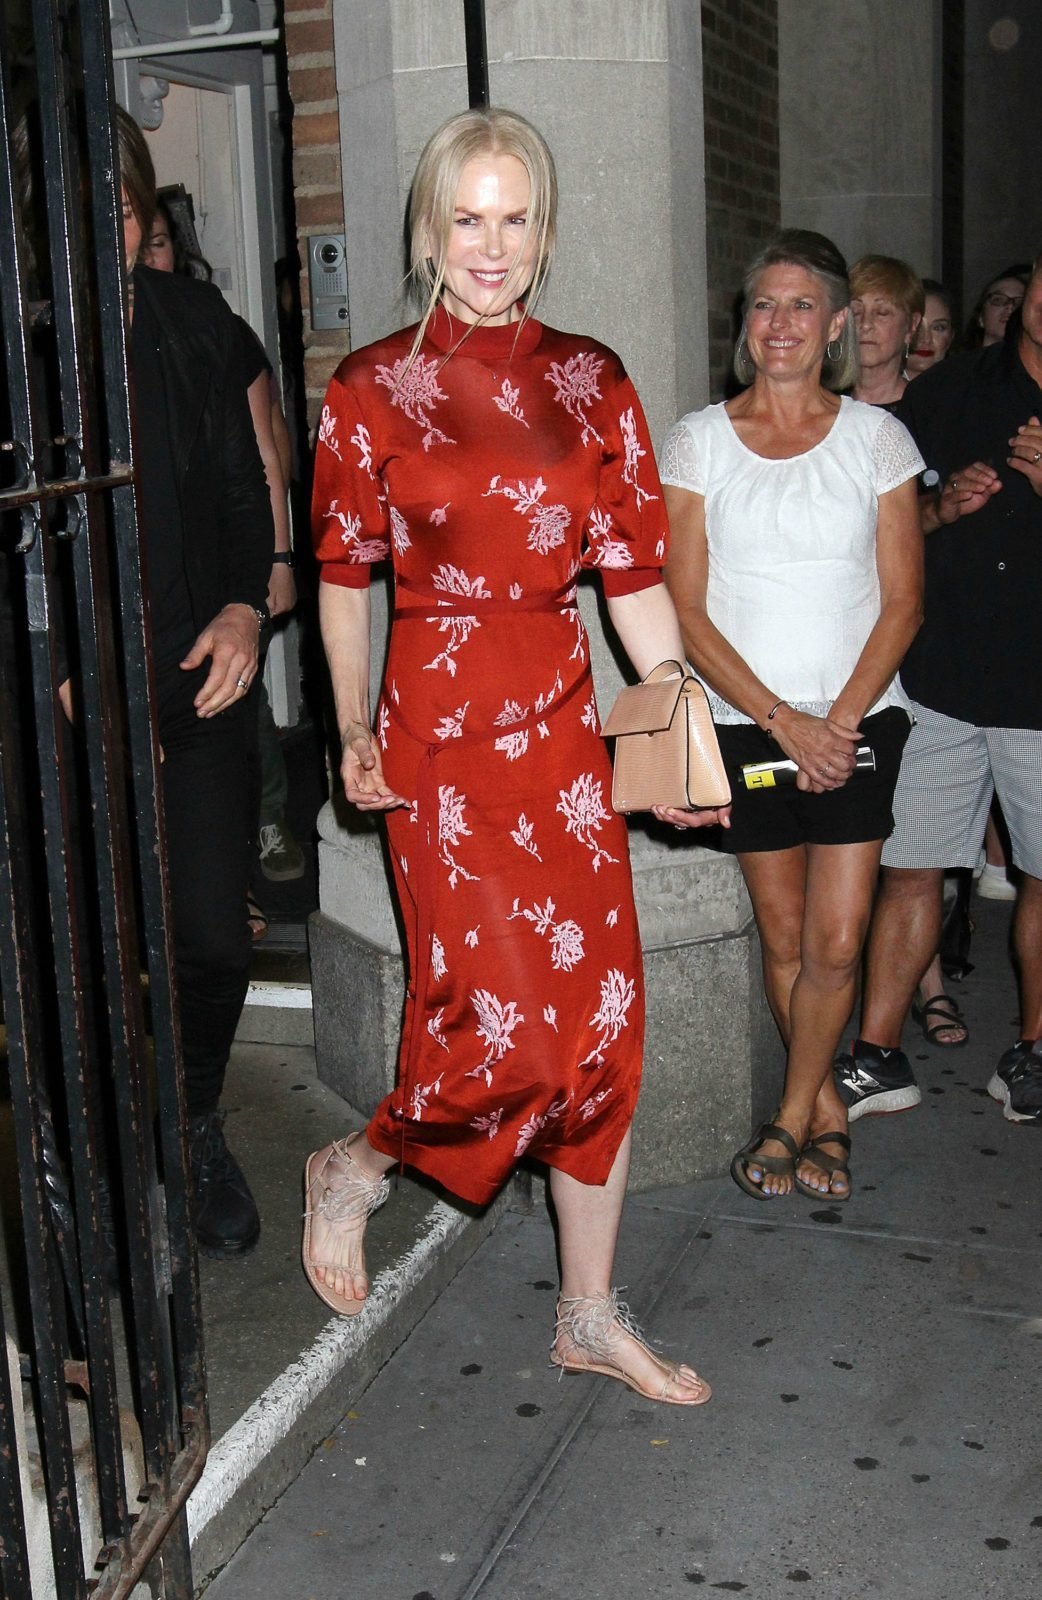 Nicole Kidman opted for an oriental-style red dress. Source: Getty.